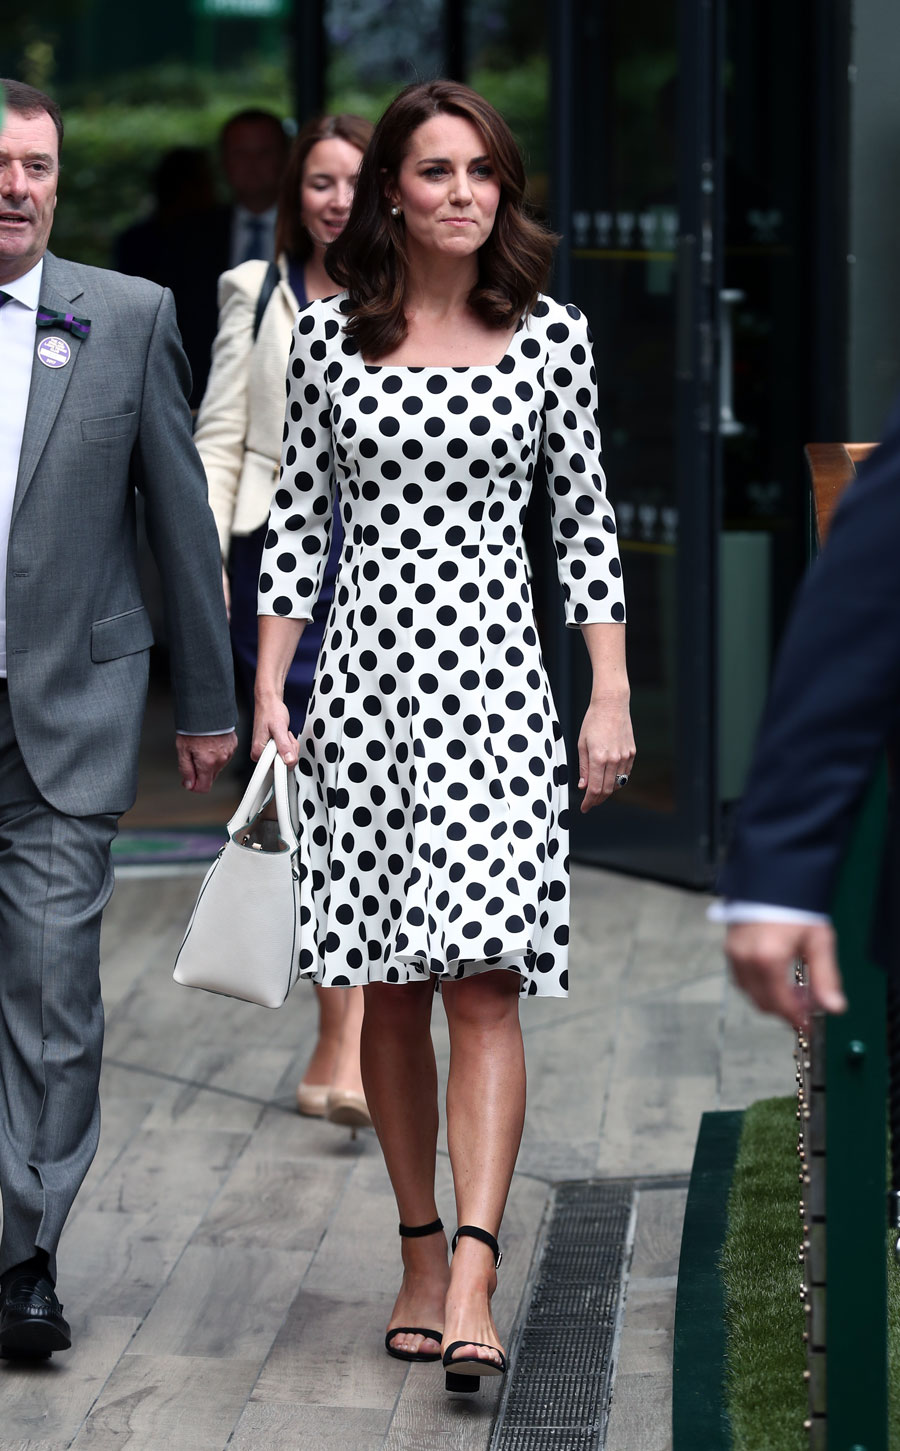 DL u378551 002. Kate Middleton